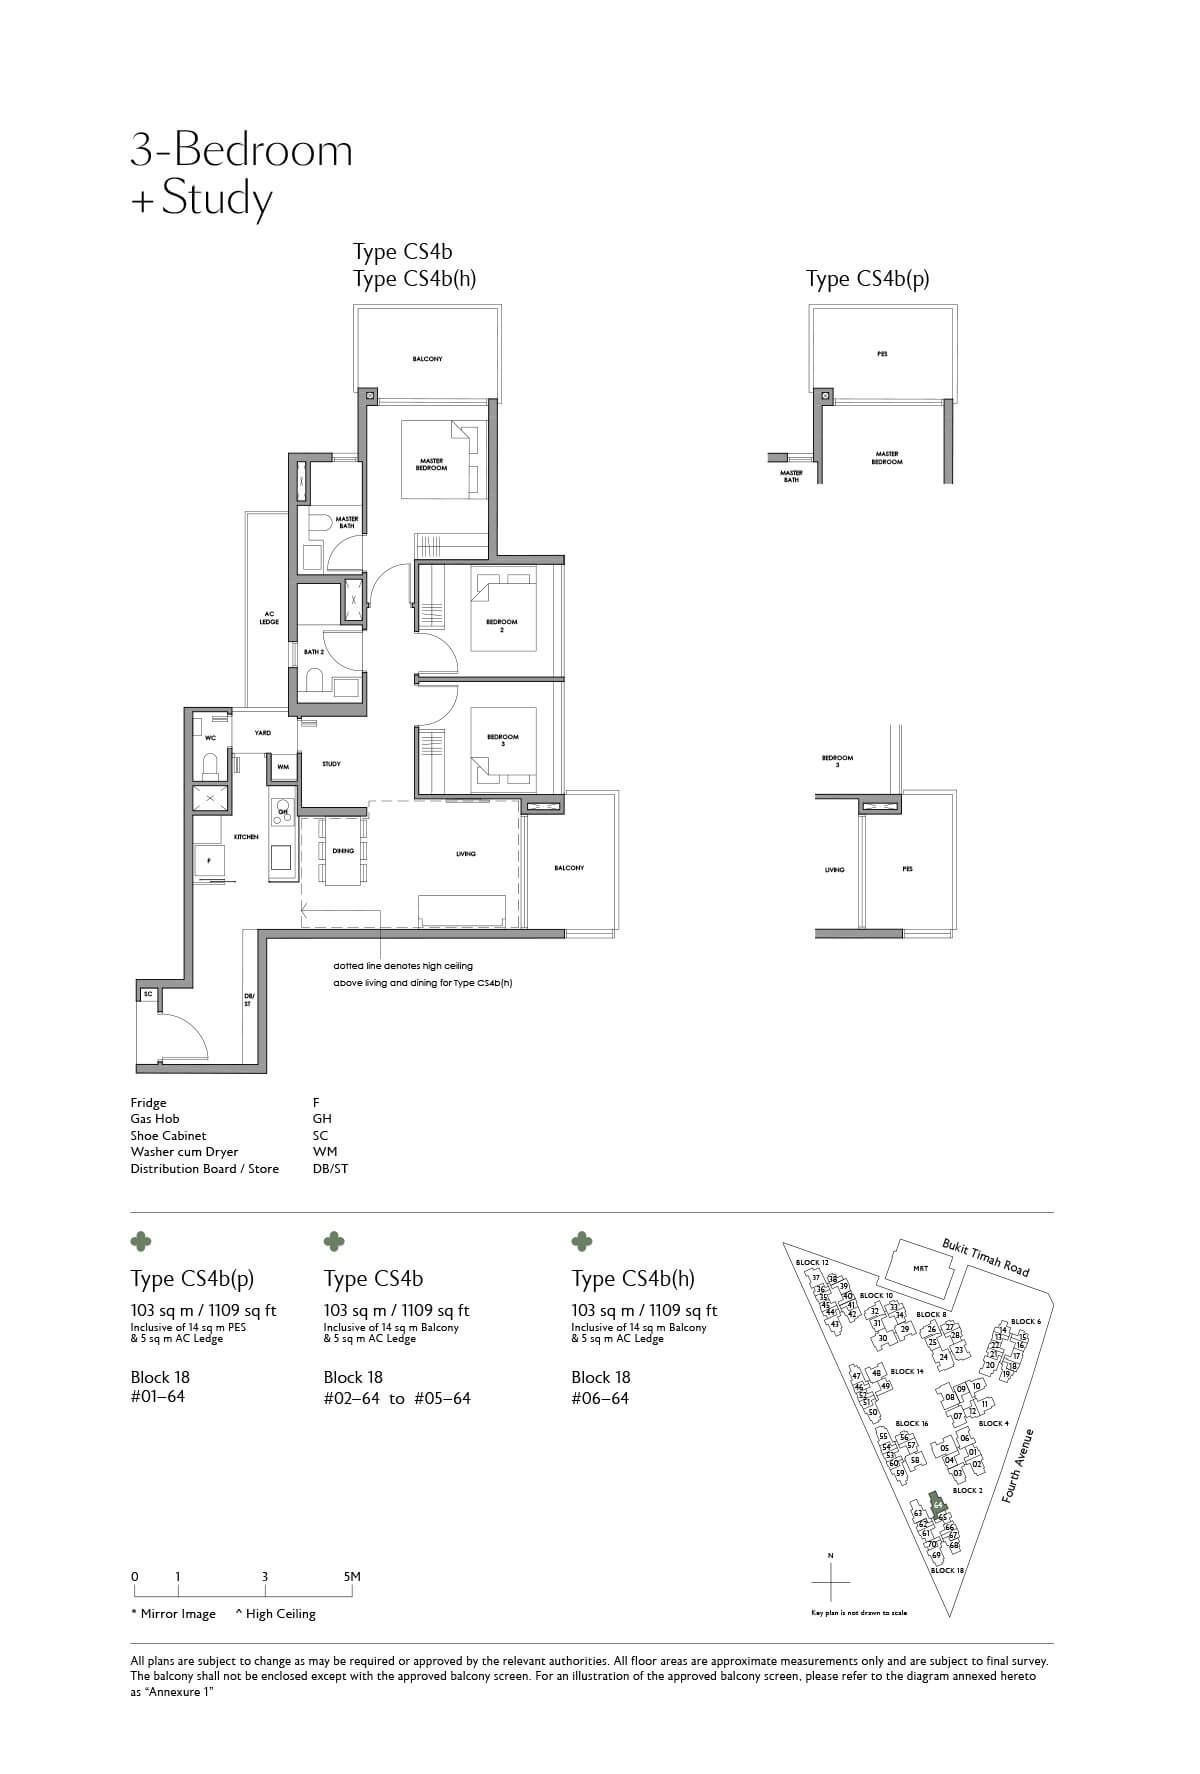 fourth-avenue-residences_floor-plan_3BR-Study_CS4b_CS4b-p_CS4b-h